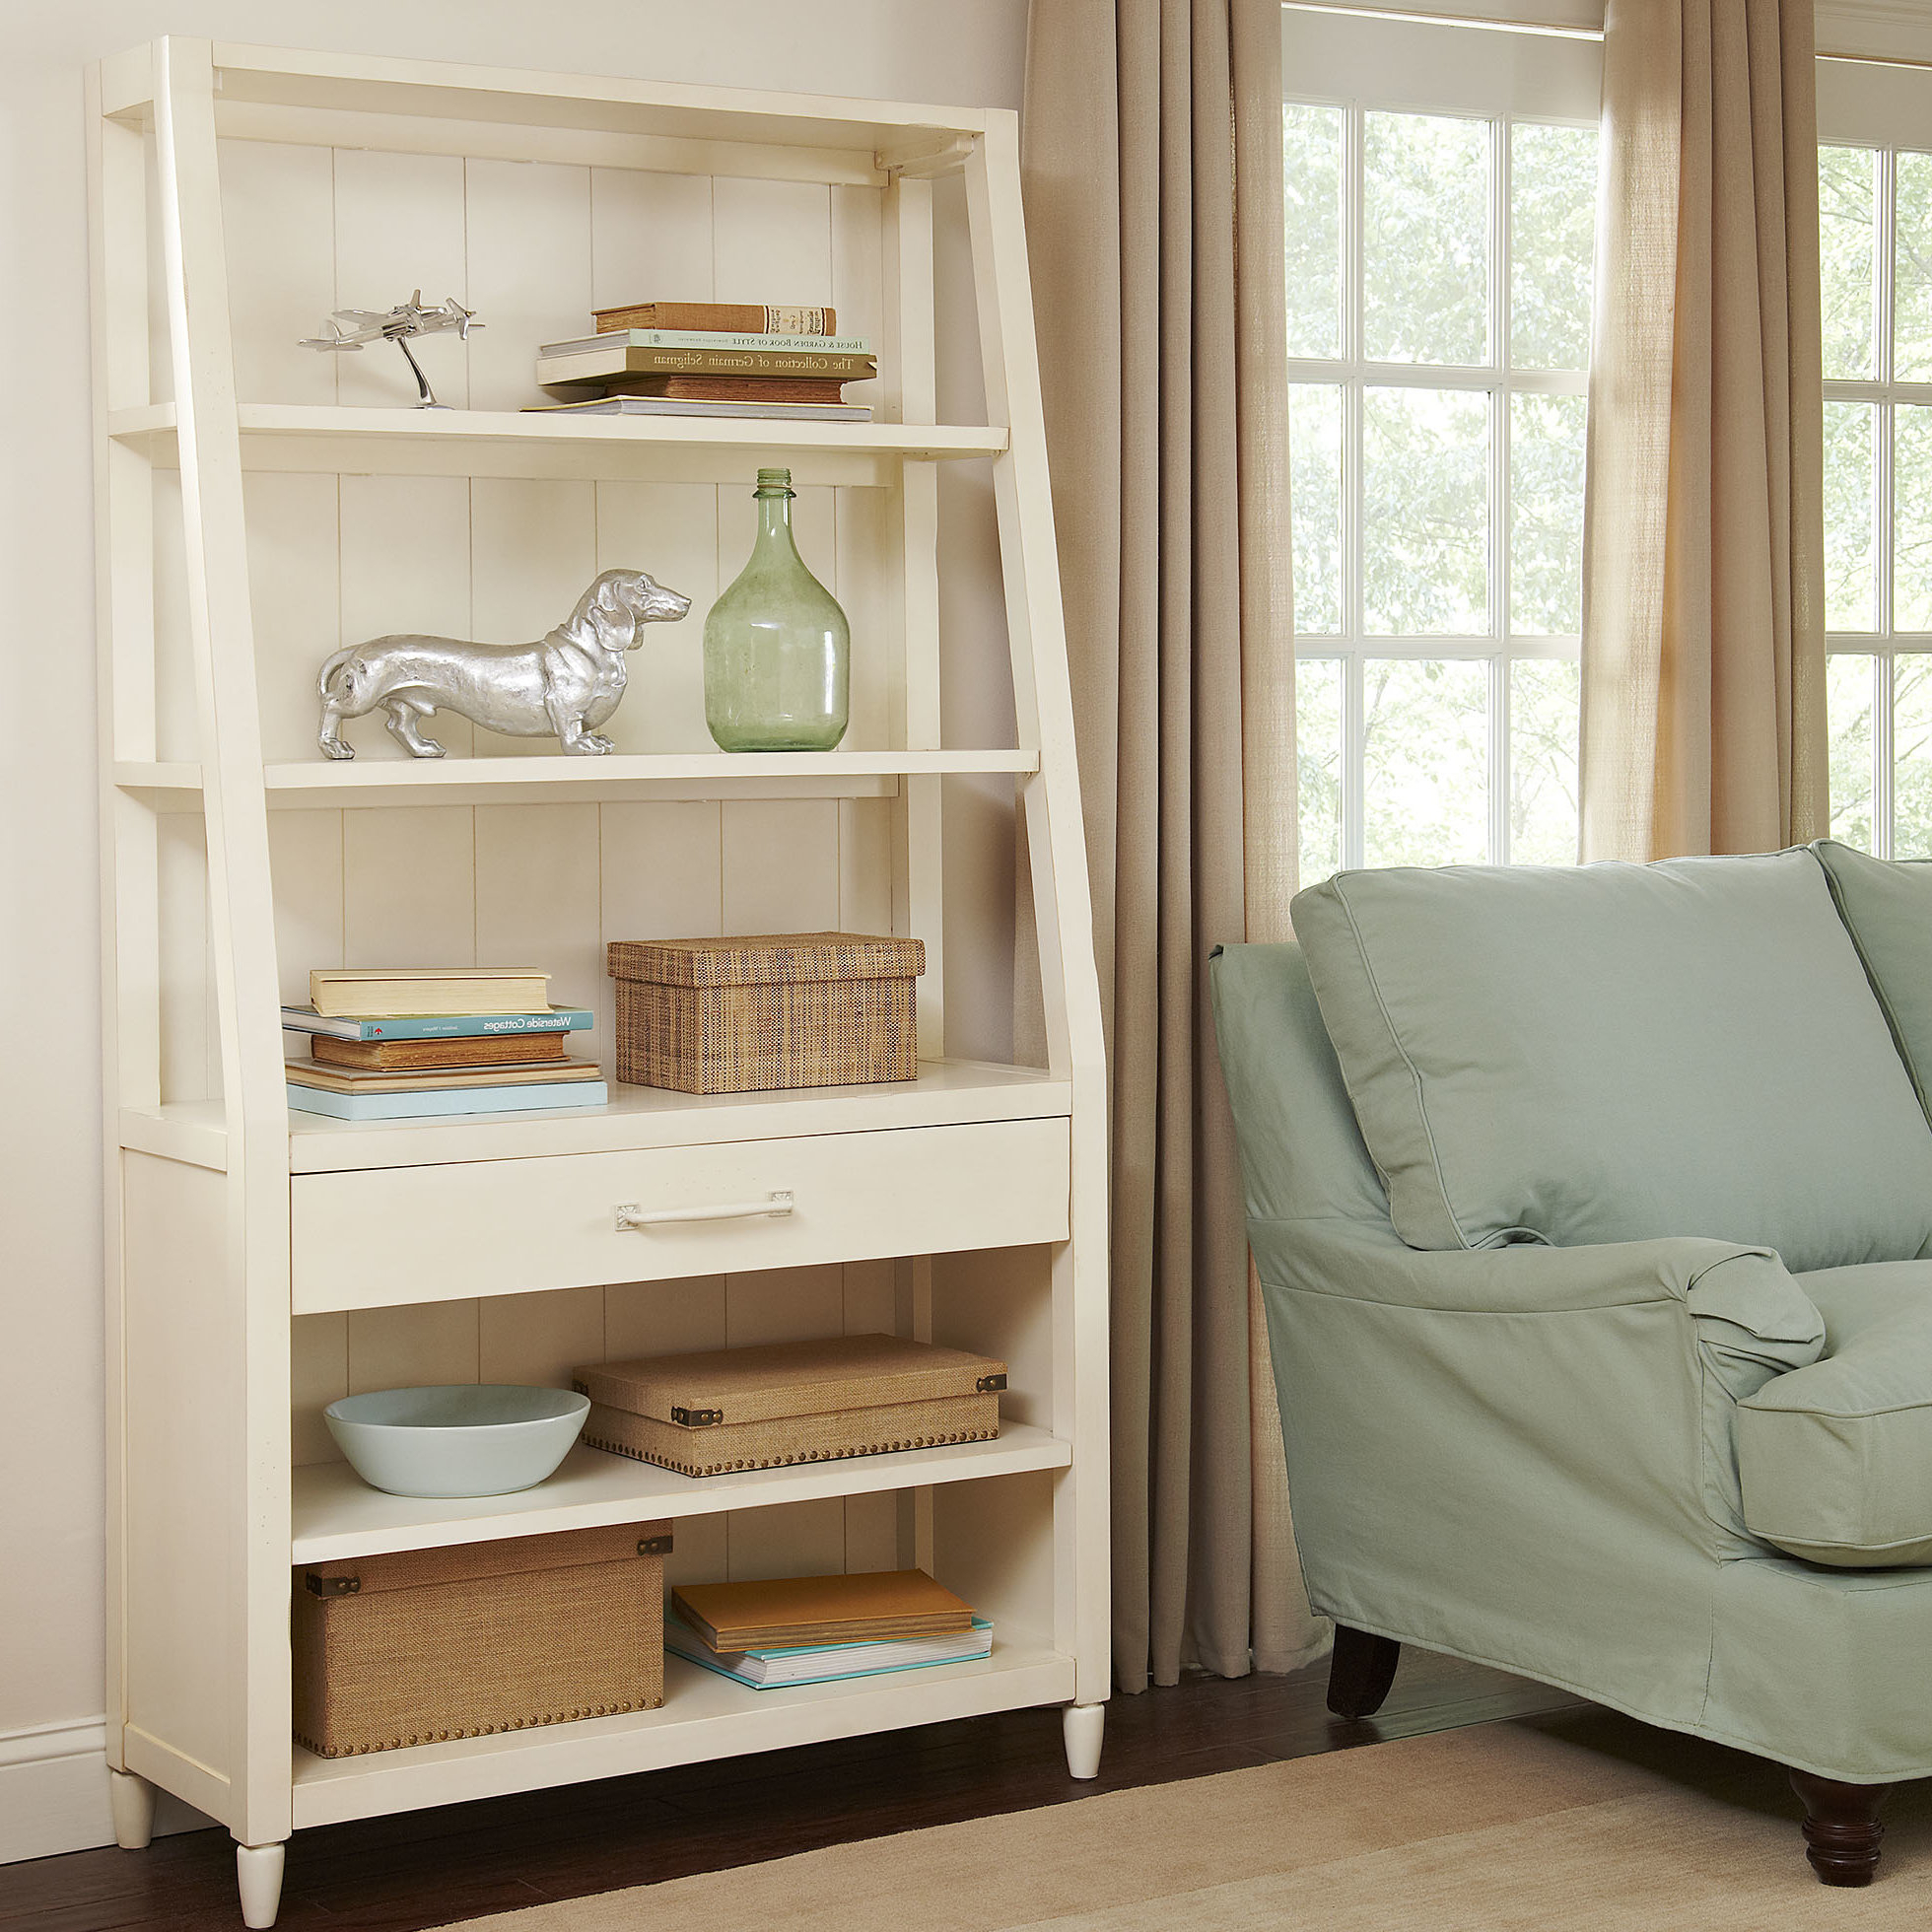 2019 Affonso Standard Bookcase Throughout Pinellas Standard Bookcases (View 16 of 20)